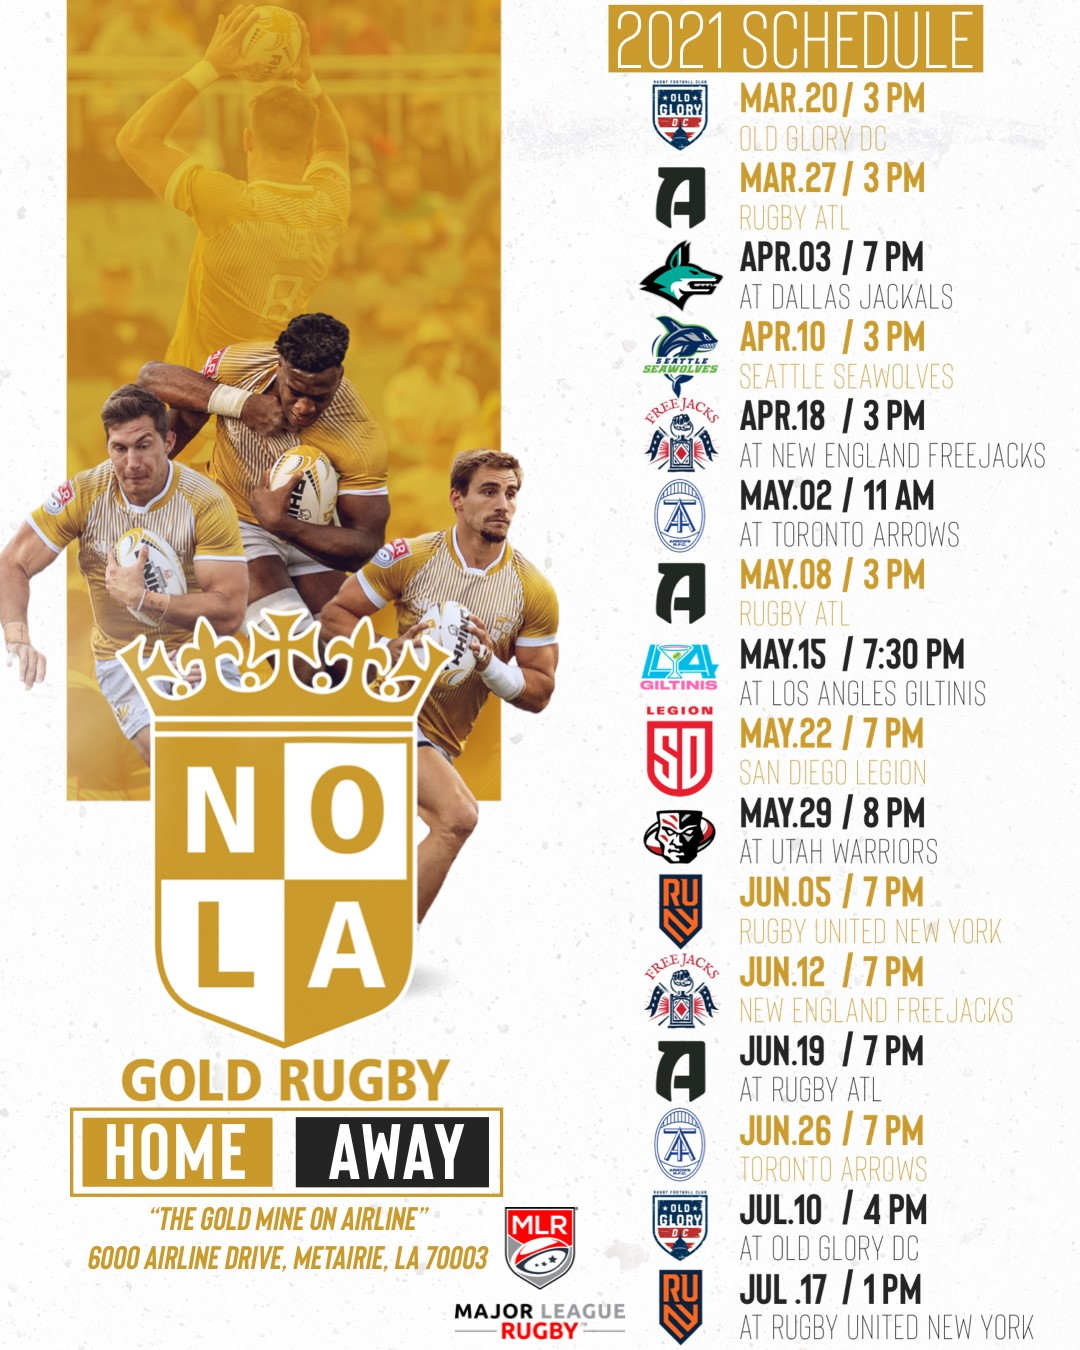 nola gold 2021 schedule